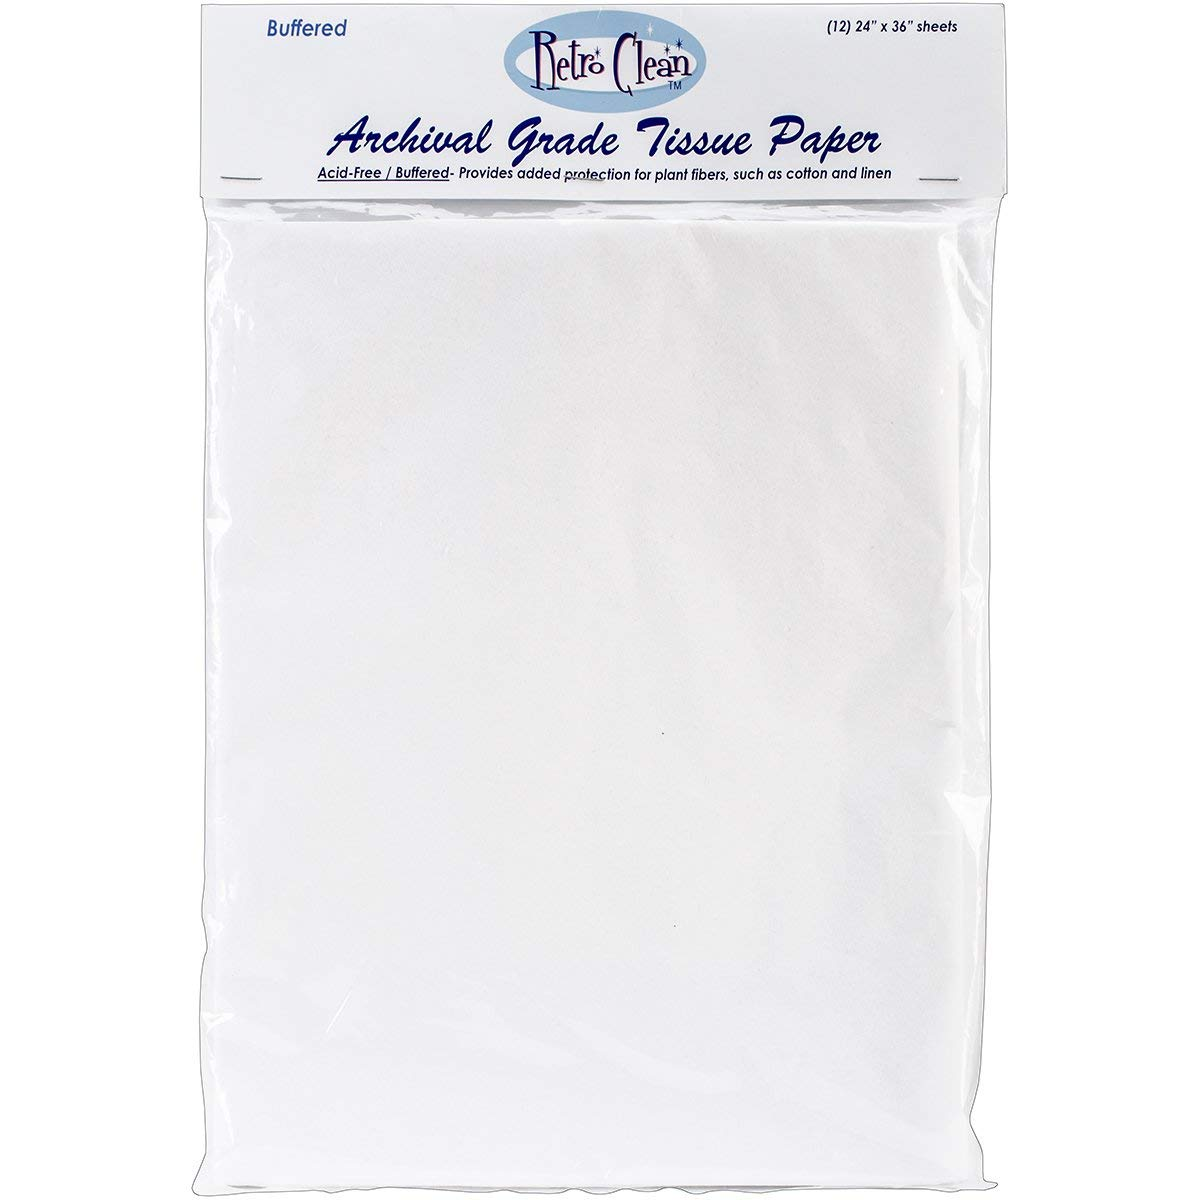 RIOLIS Retro Clean Archival Grade Tissue Paper, Buffered, 24-Inch by 36-Inch, 12 sheets